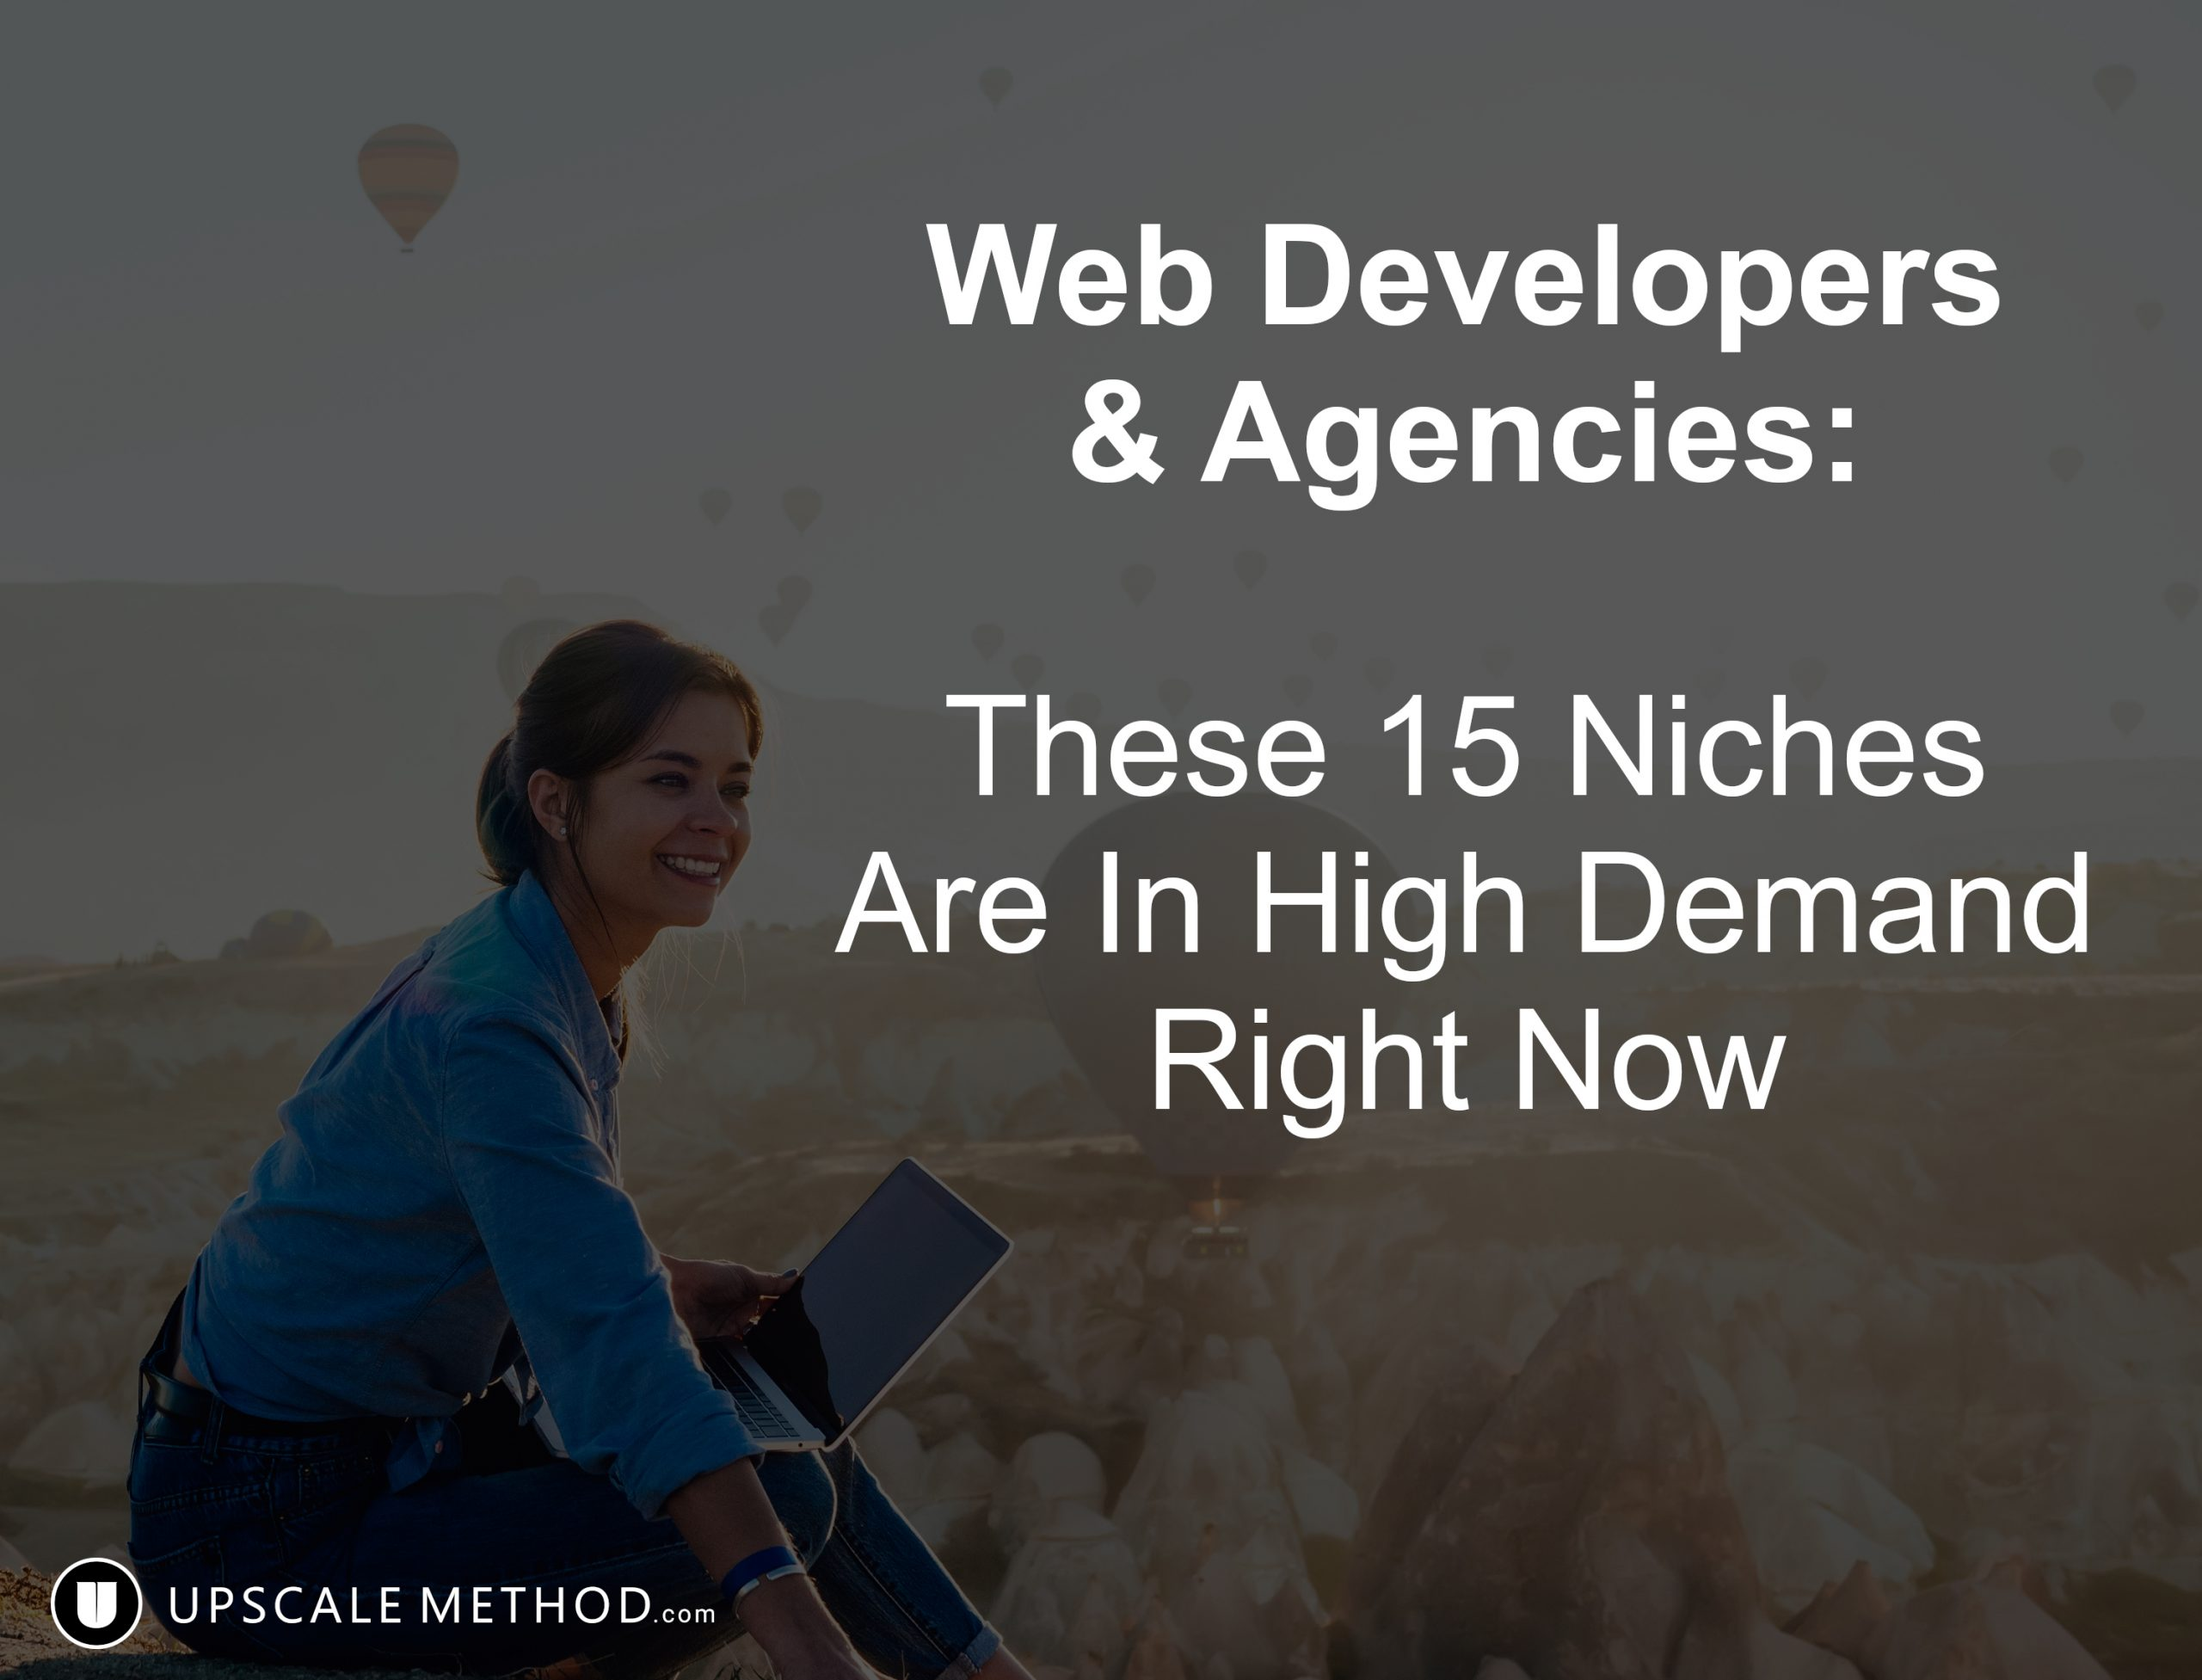 Web Developers & Agencies: These 15 Niches Are In High Demand Right Now